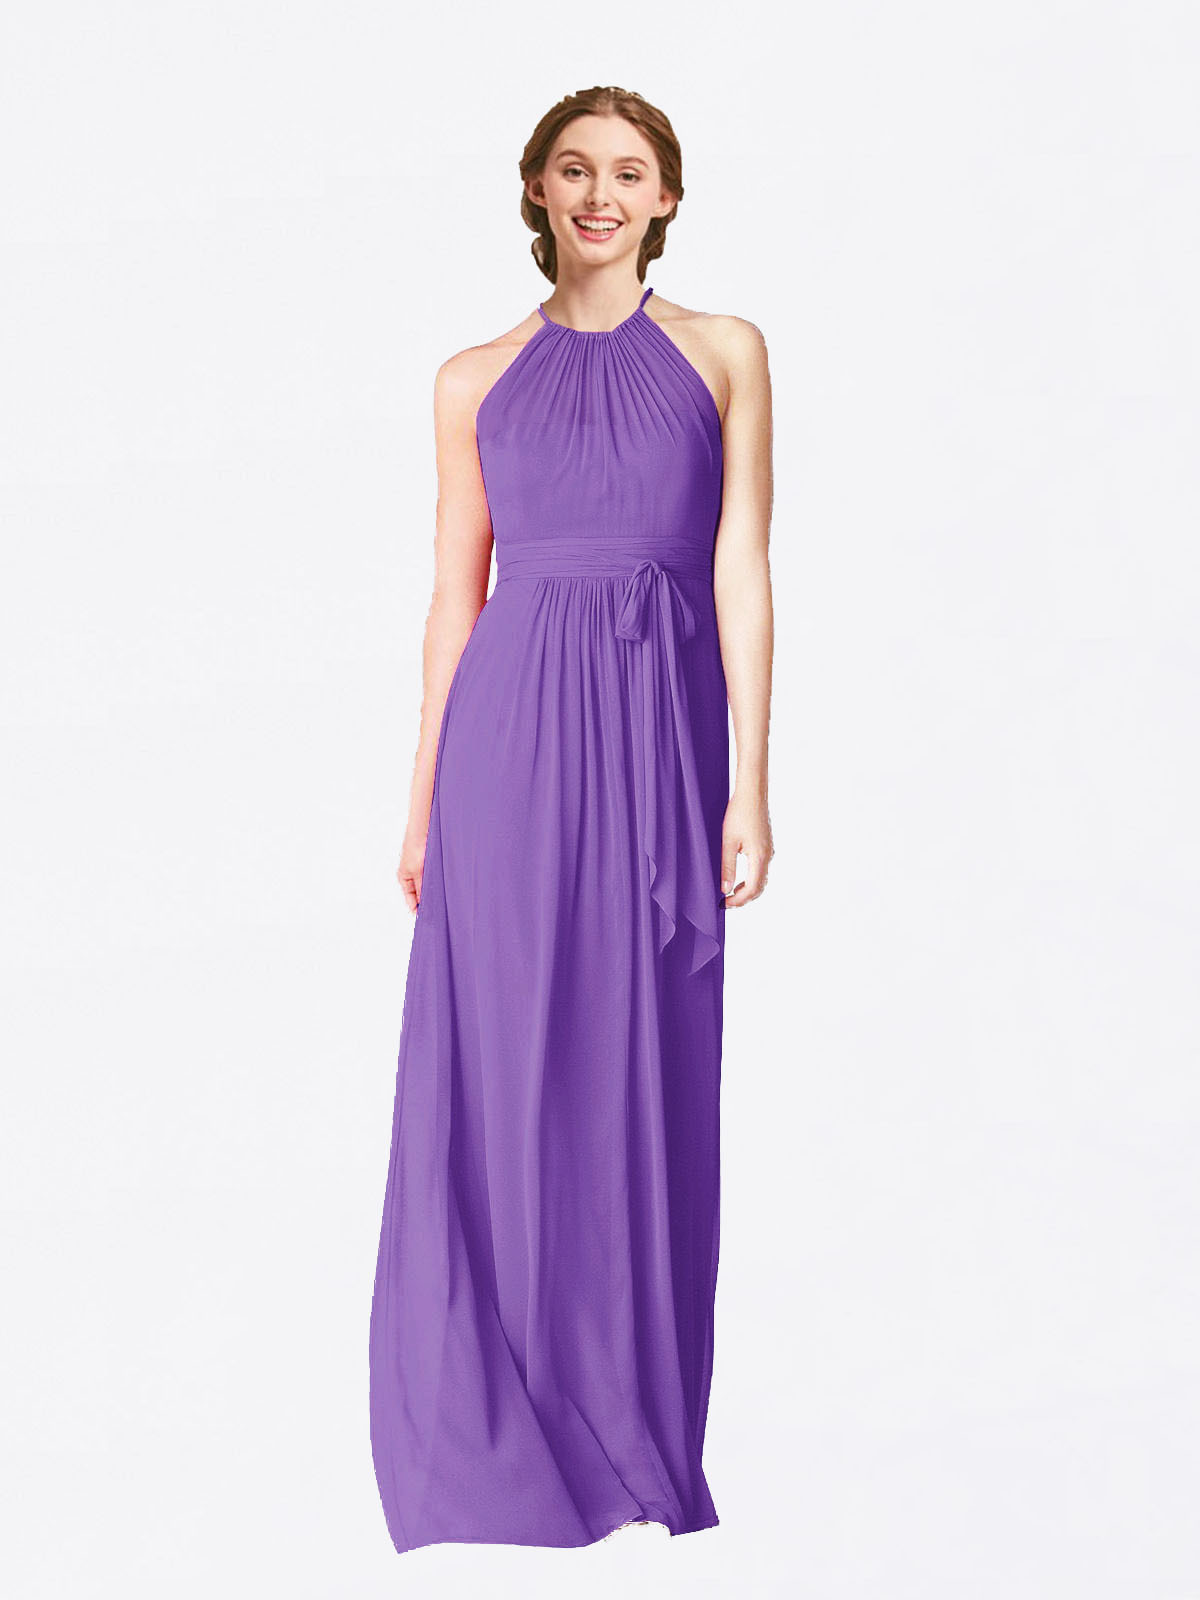 Long A-Line Halter Sleeveless Tahiti Chiffon Bridesmaid Dress Laura